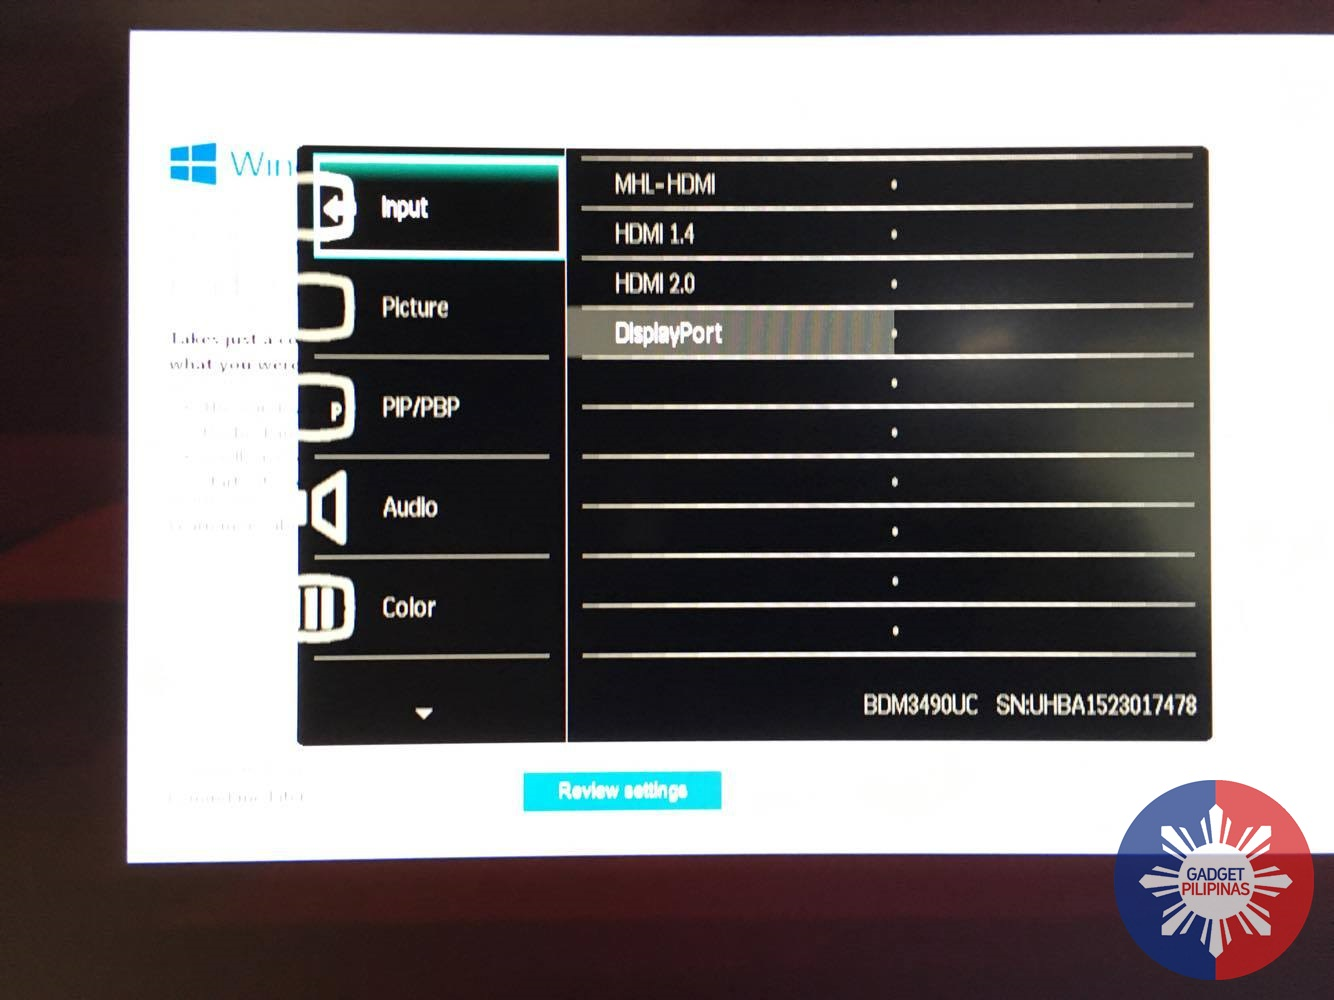 Philips BDM349OUC Curved UltraWide LCD Monitor Review 21